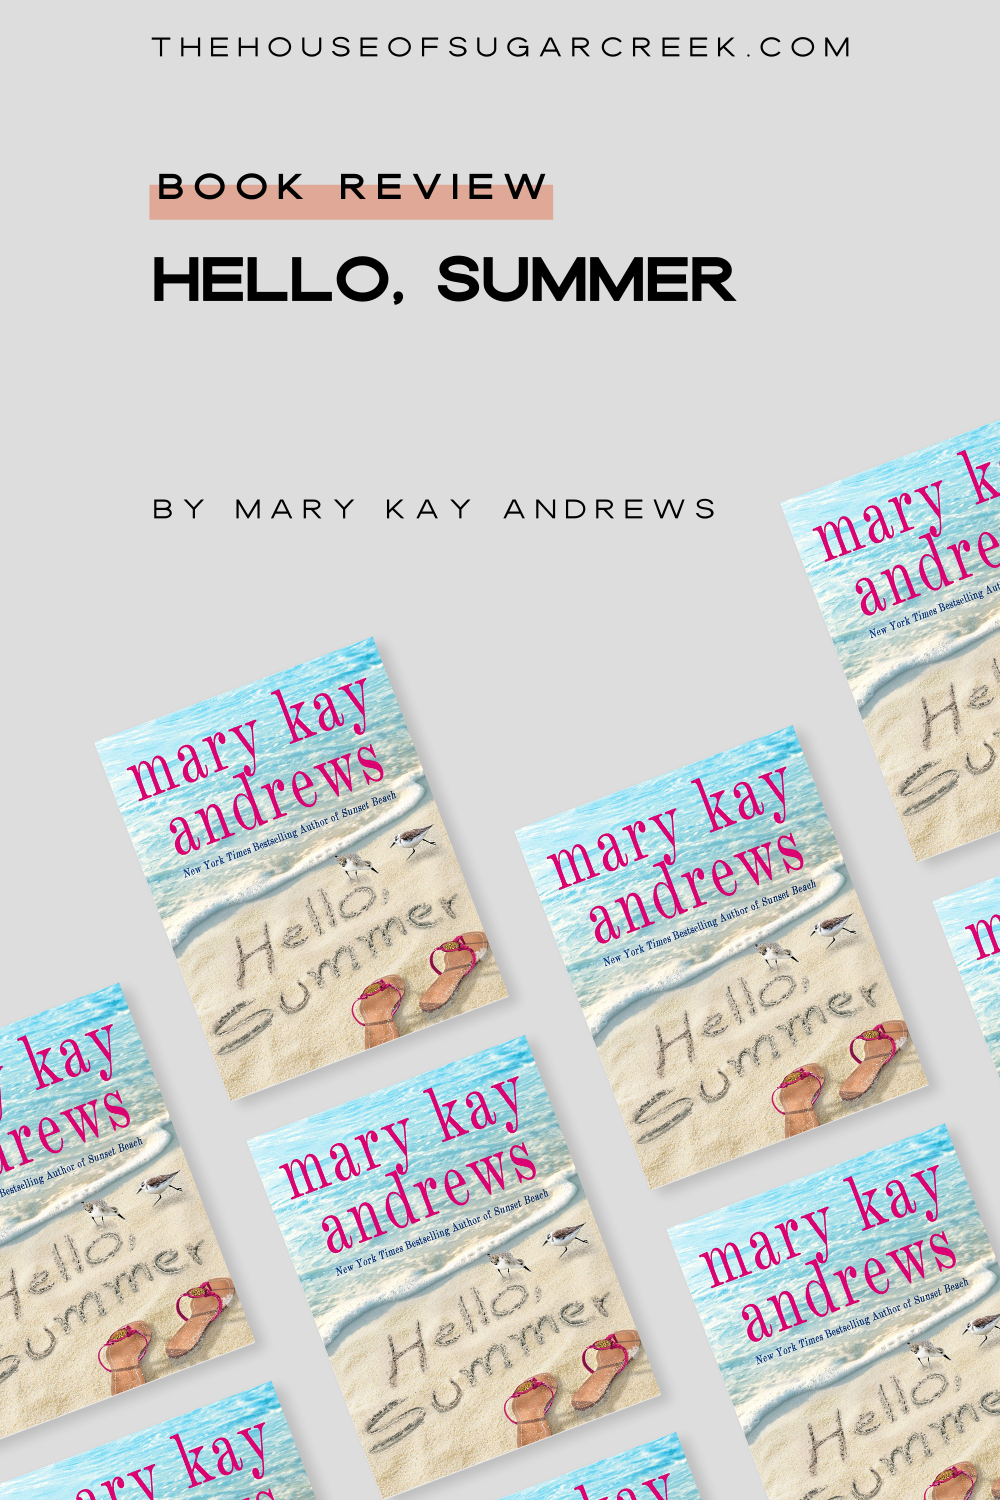 Book Review - Hello, Summer by Mary Kay Andrews